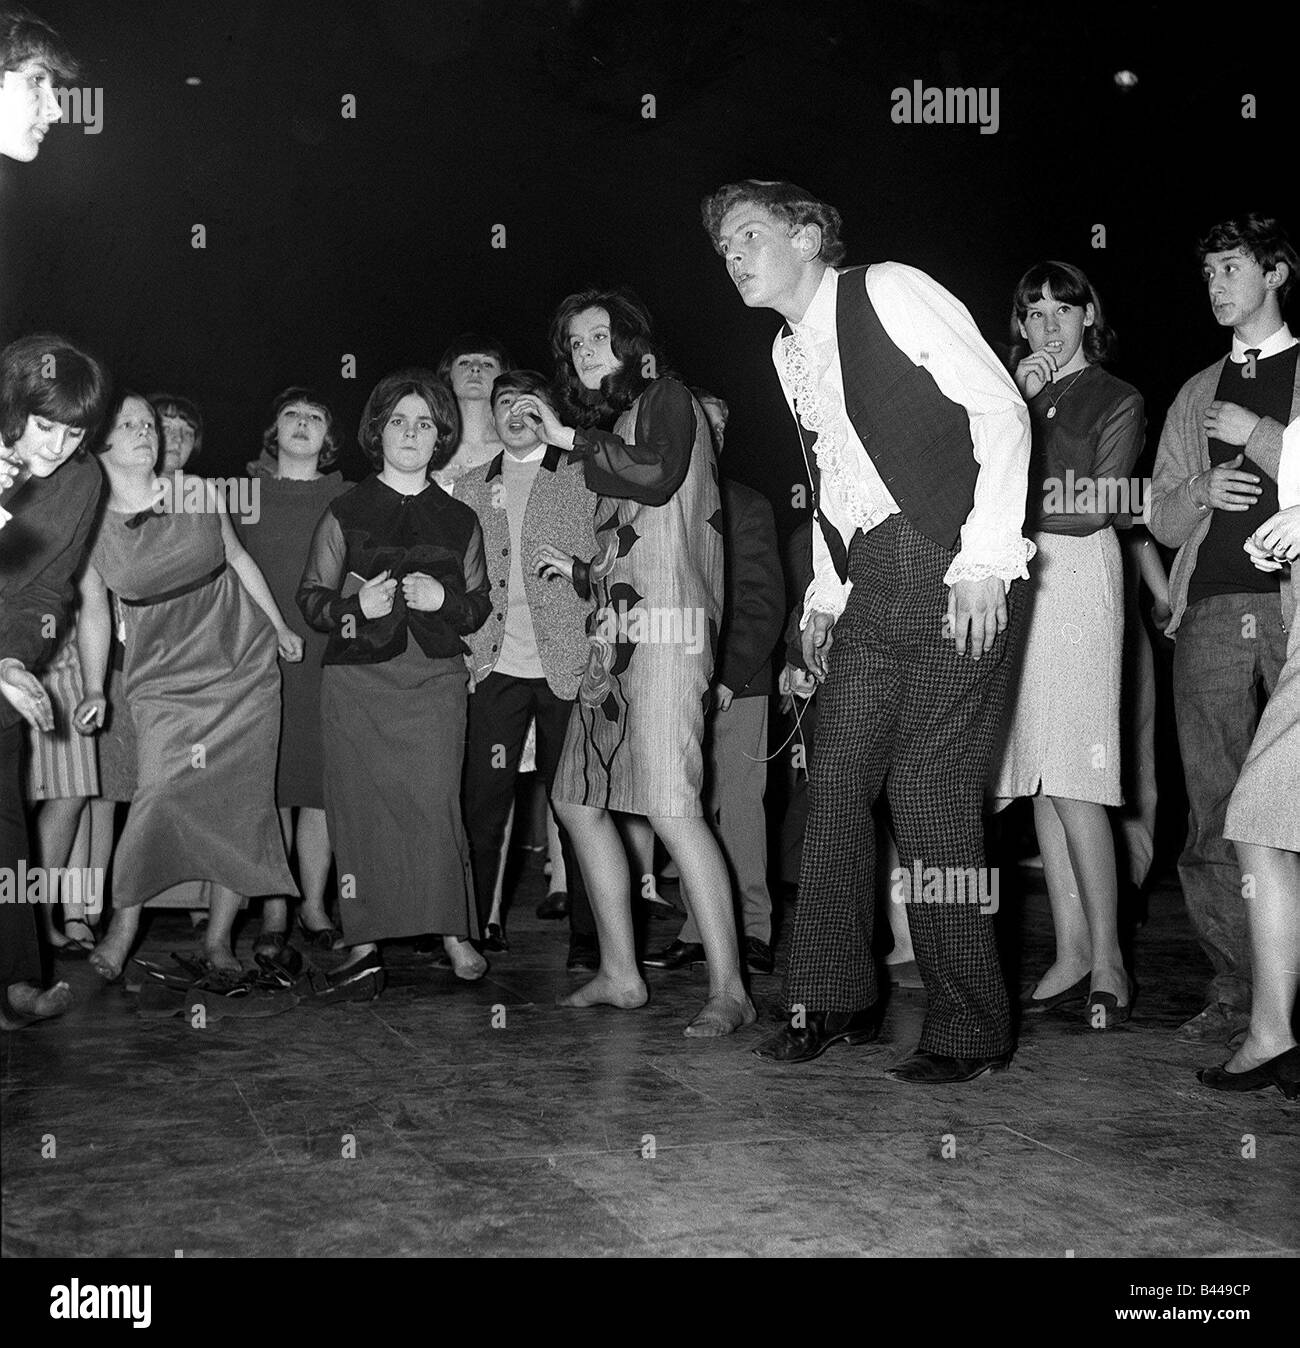 Mods Dancing at the Mod Ball in Wembley s Empire Pool 1964 Stock